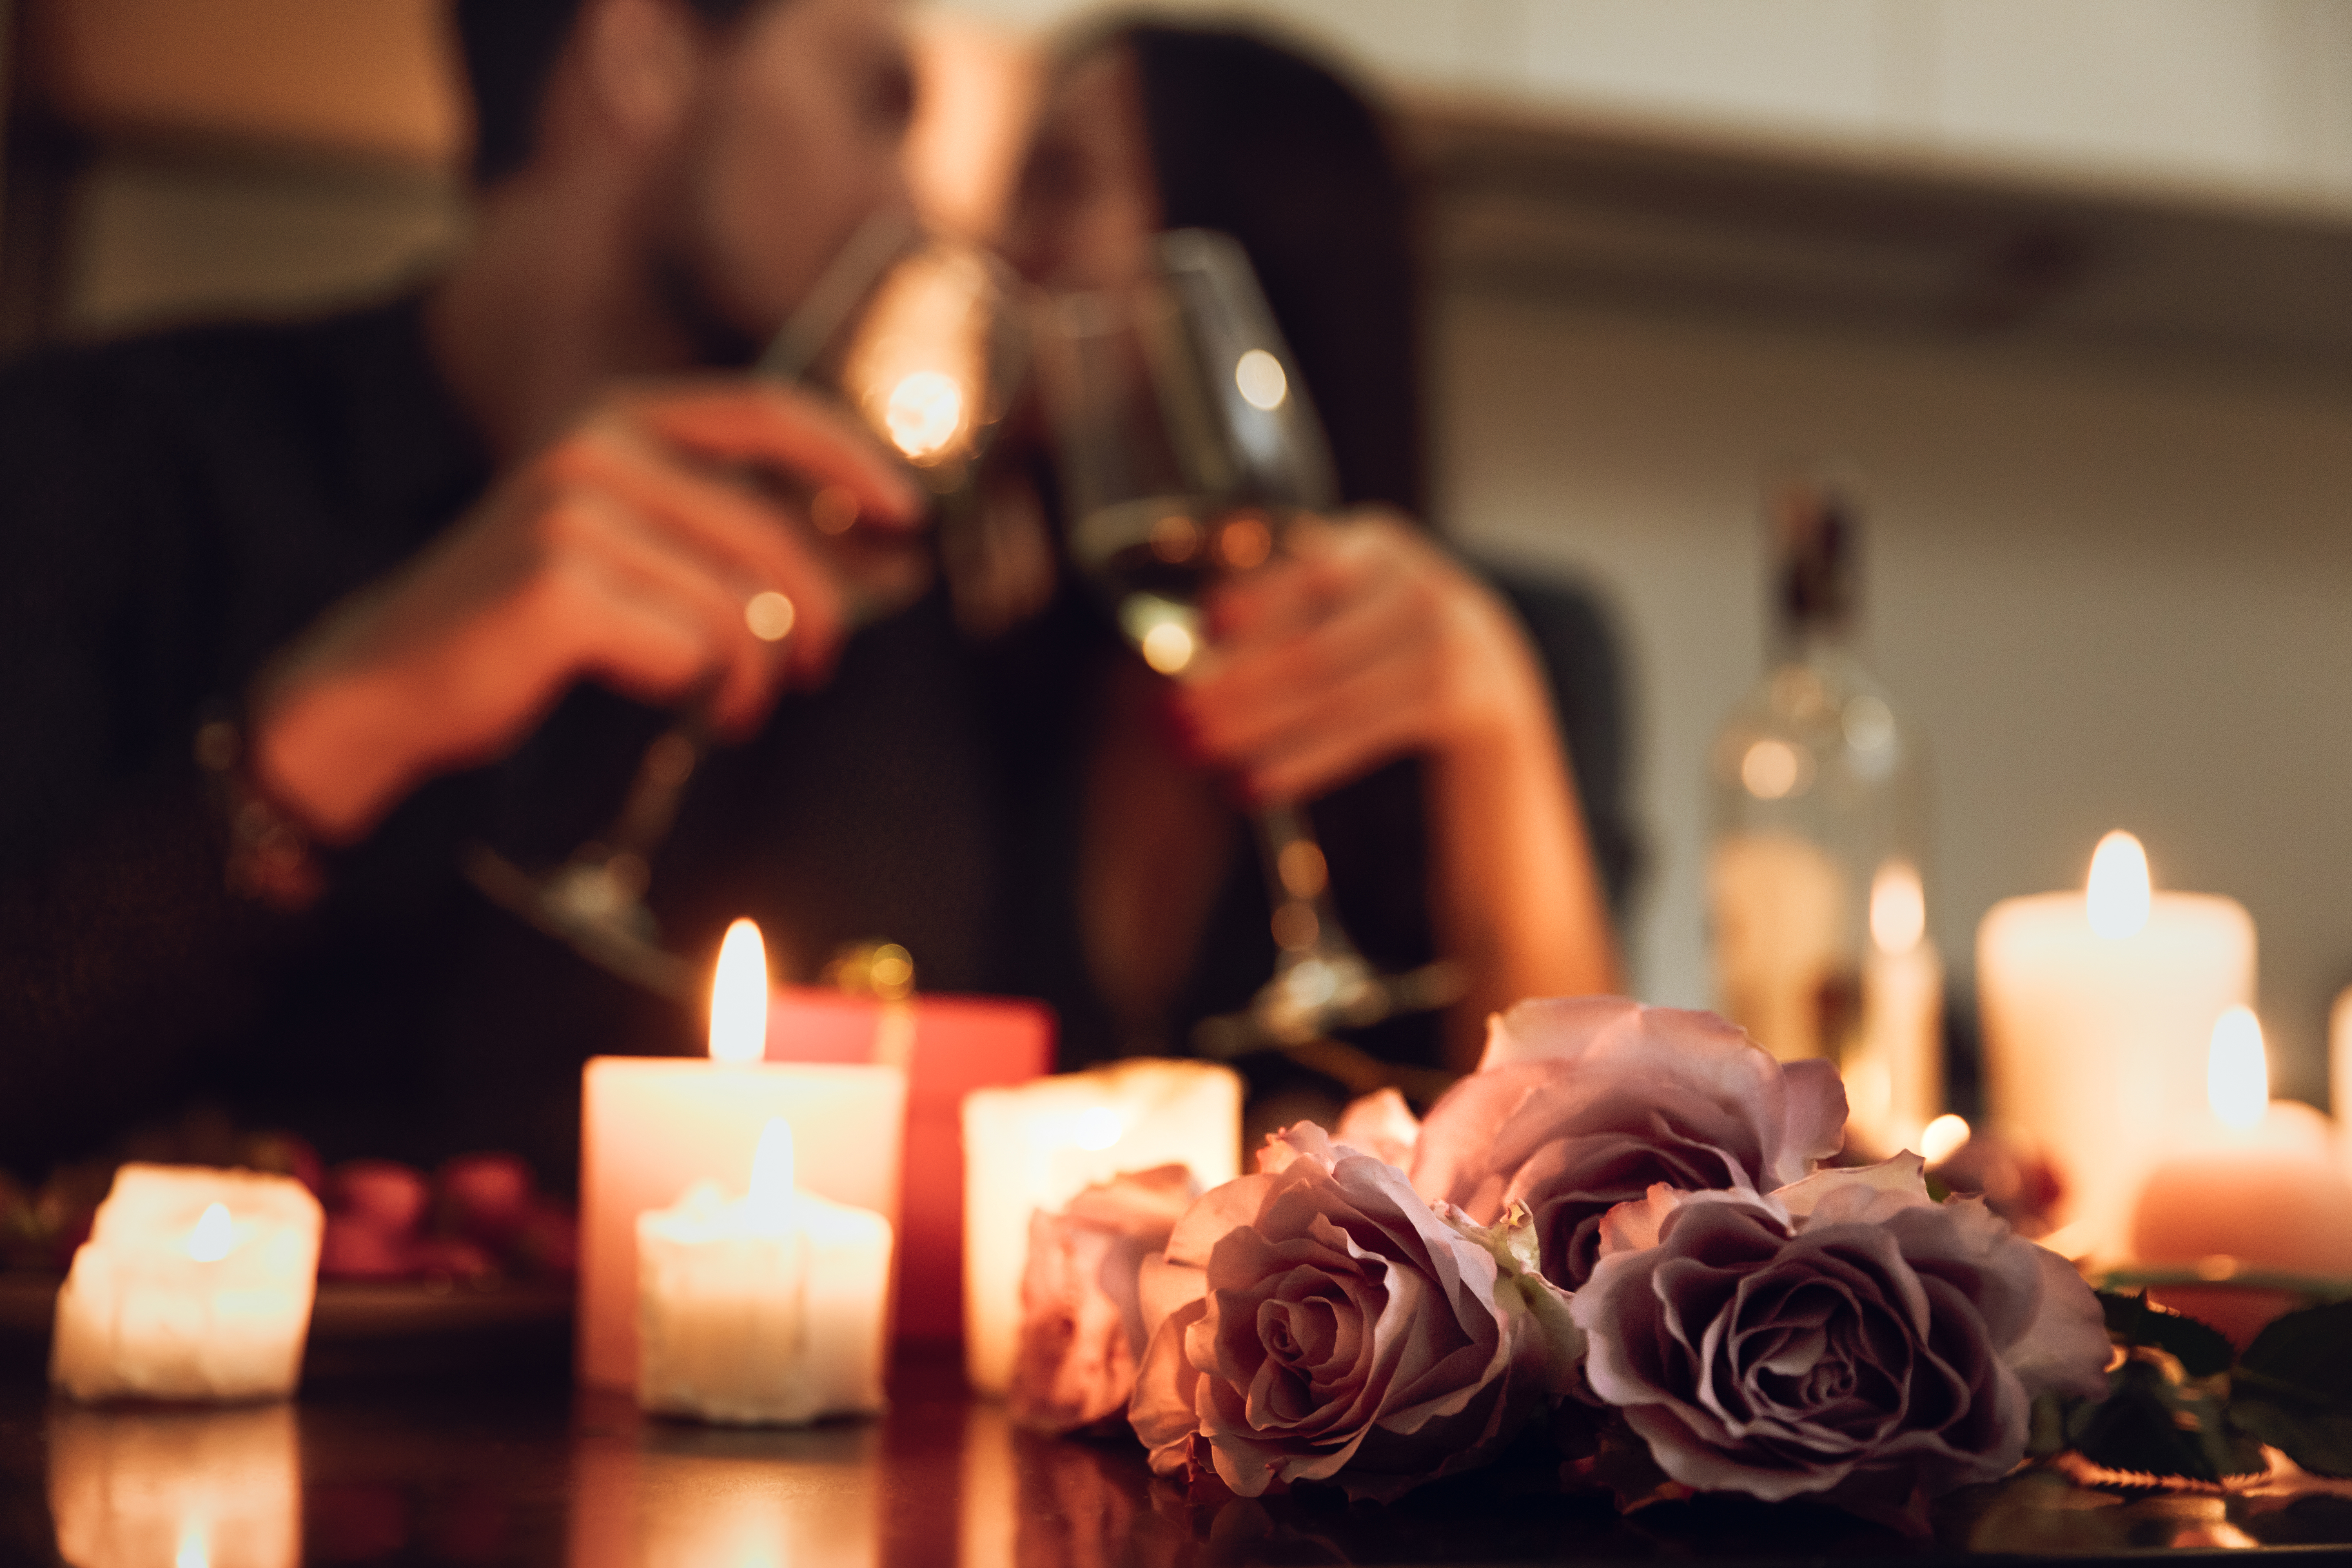 6 MUST-HAVE ITEMS FOR A ROMANTIC VALENTINE'S DATE AT HOME